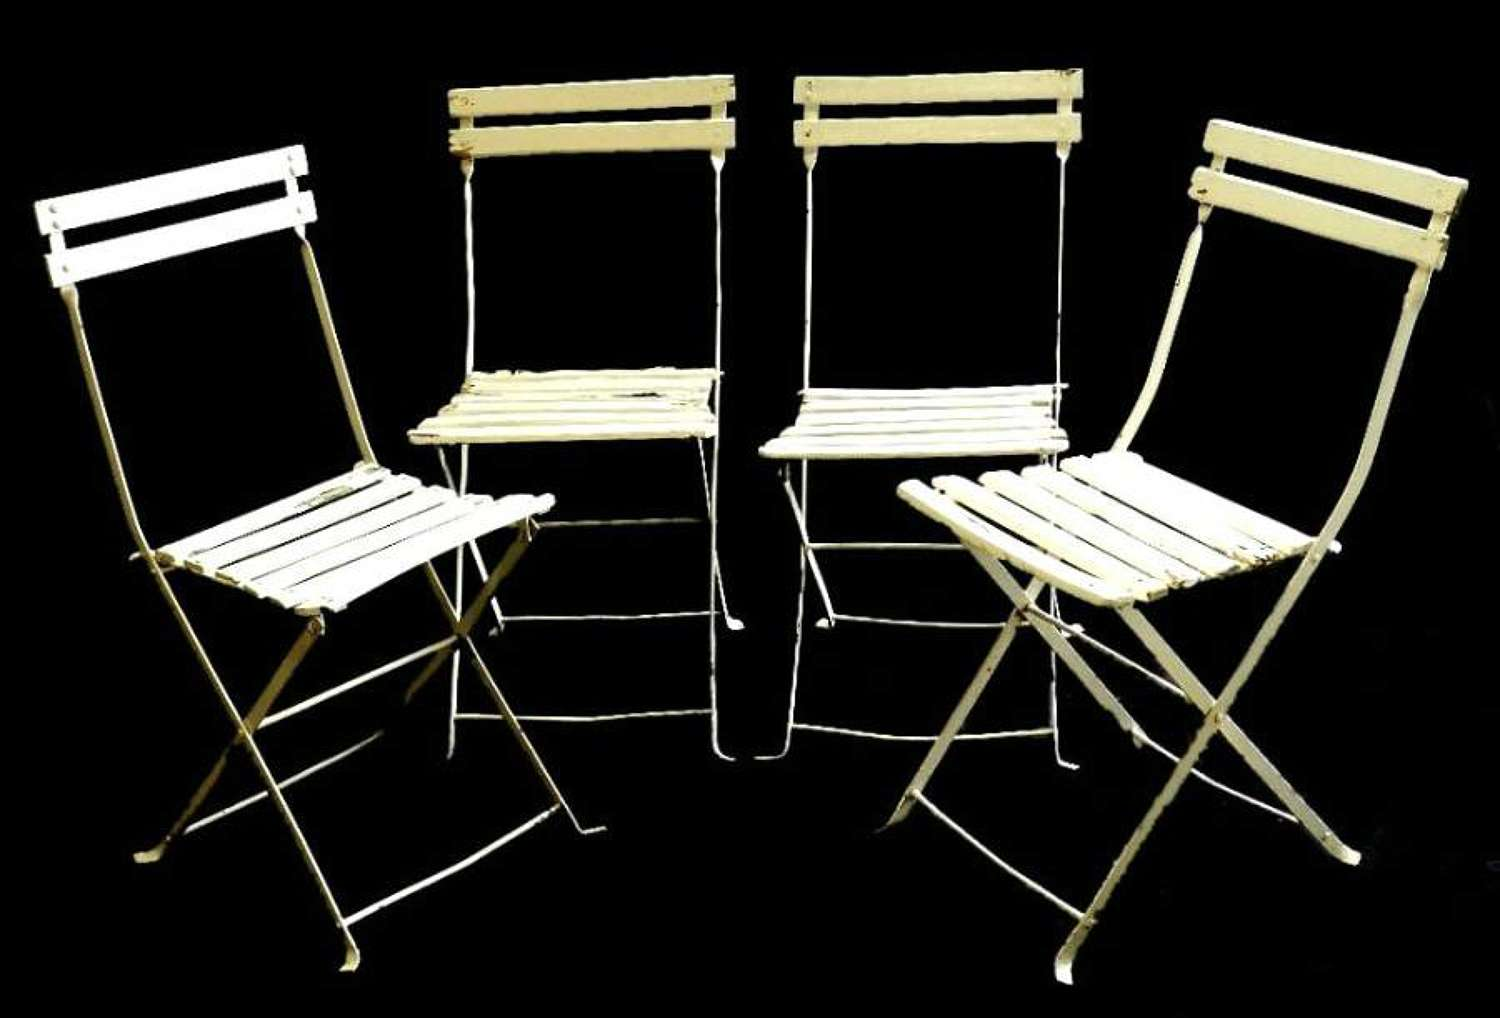 Set of 4 French Folding Garden Chairs